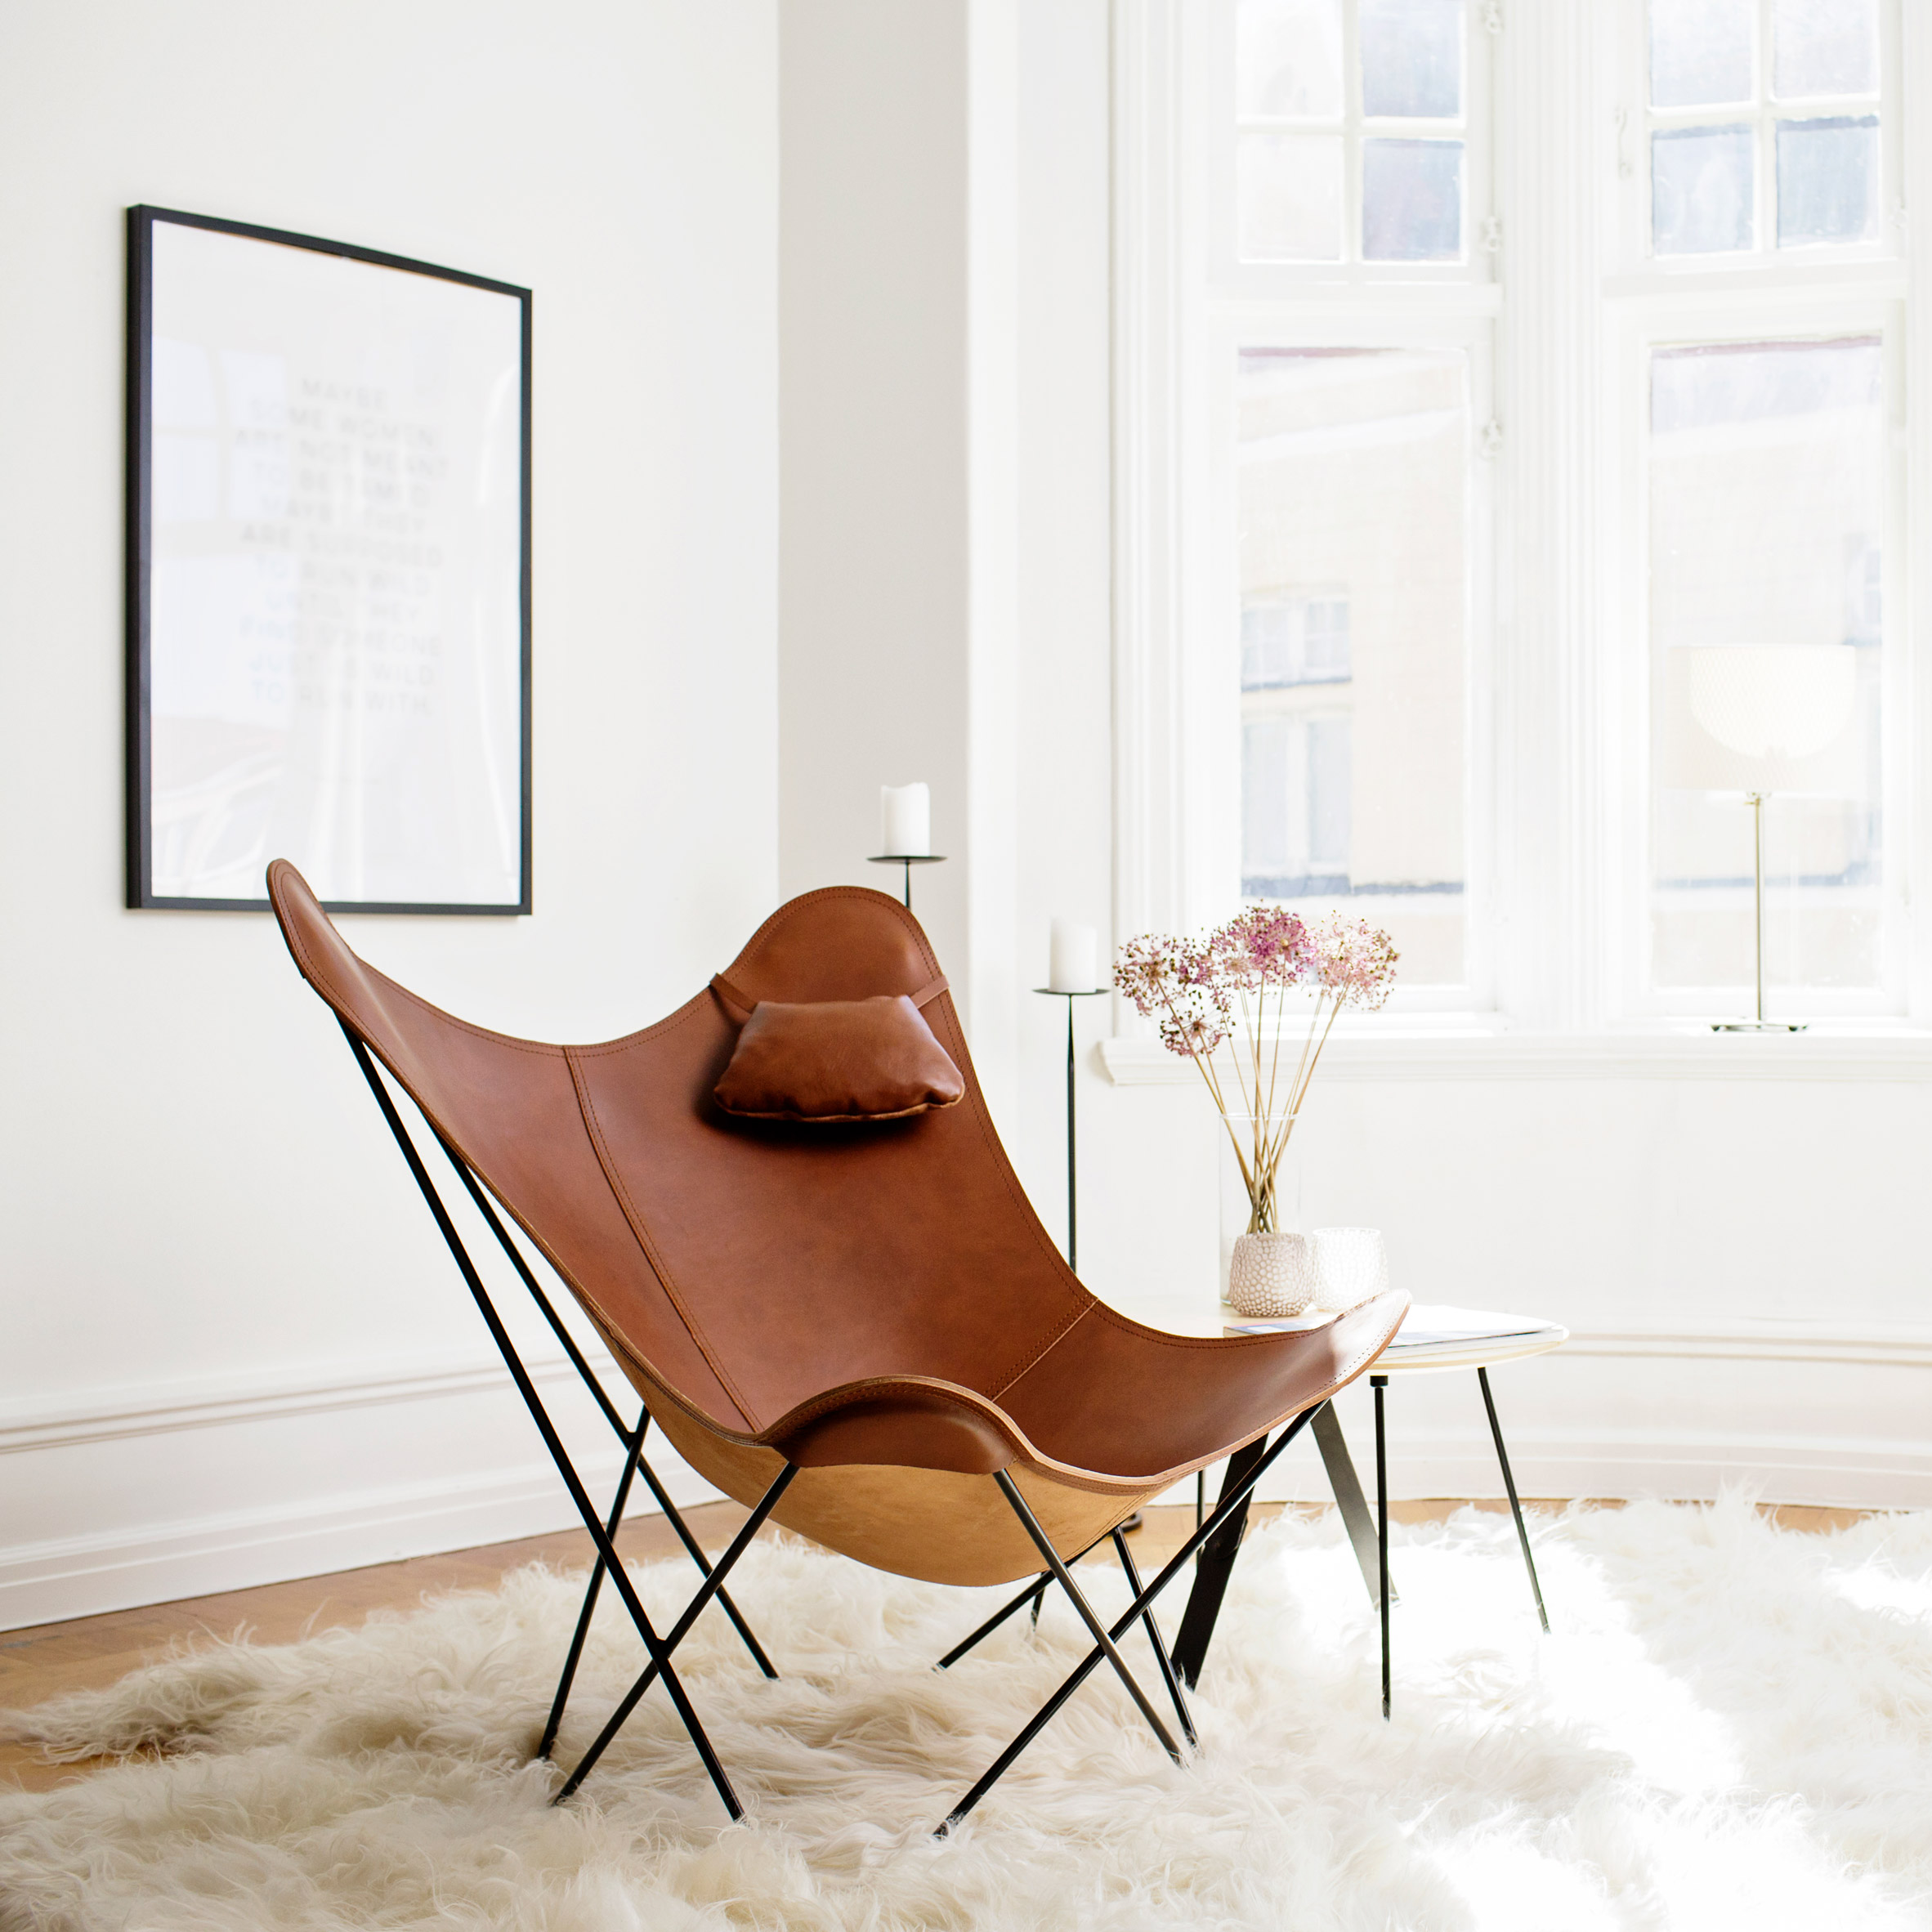 Pampa Mariposa chair by Cuero Design